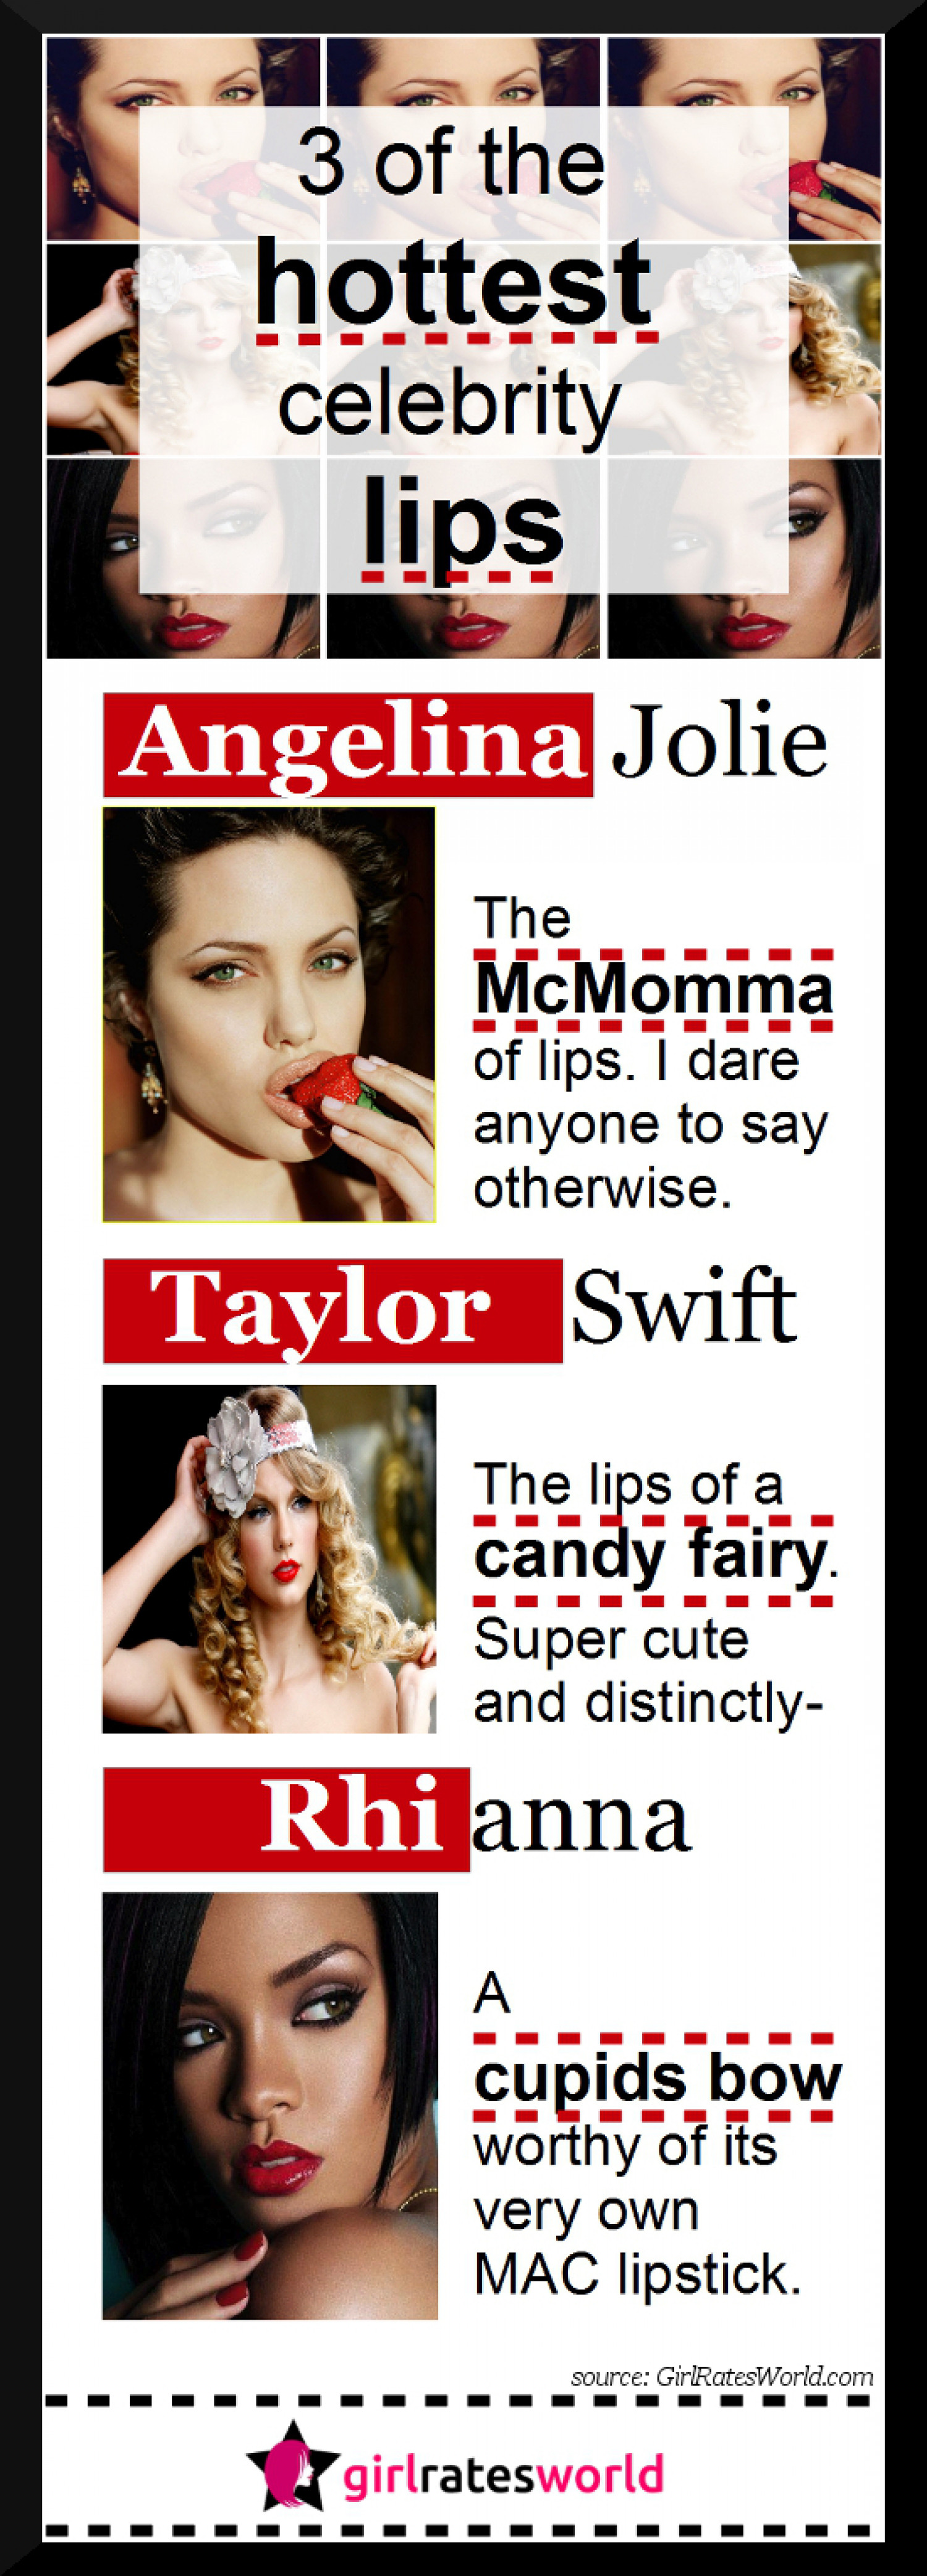 Celebrity Lips: Who Has the Hottest? Infographic